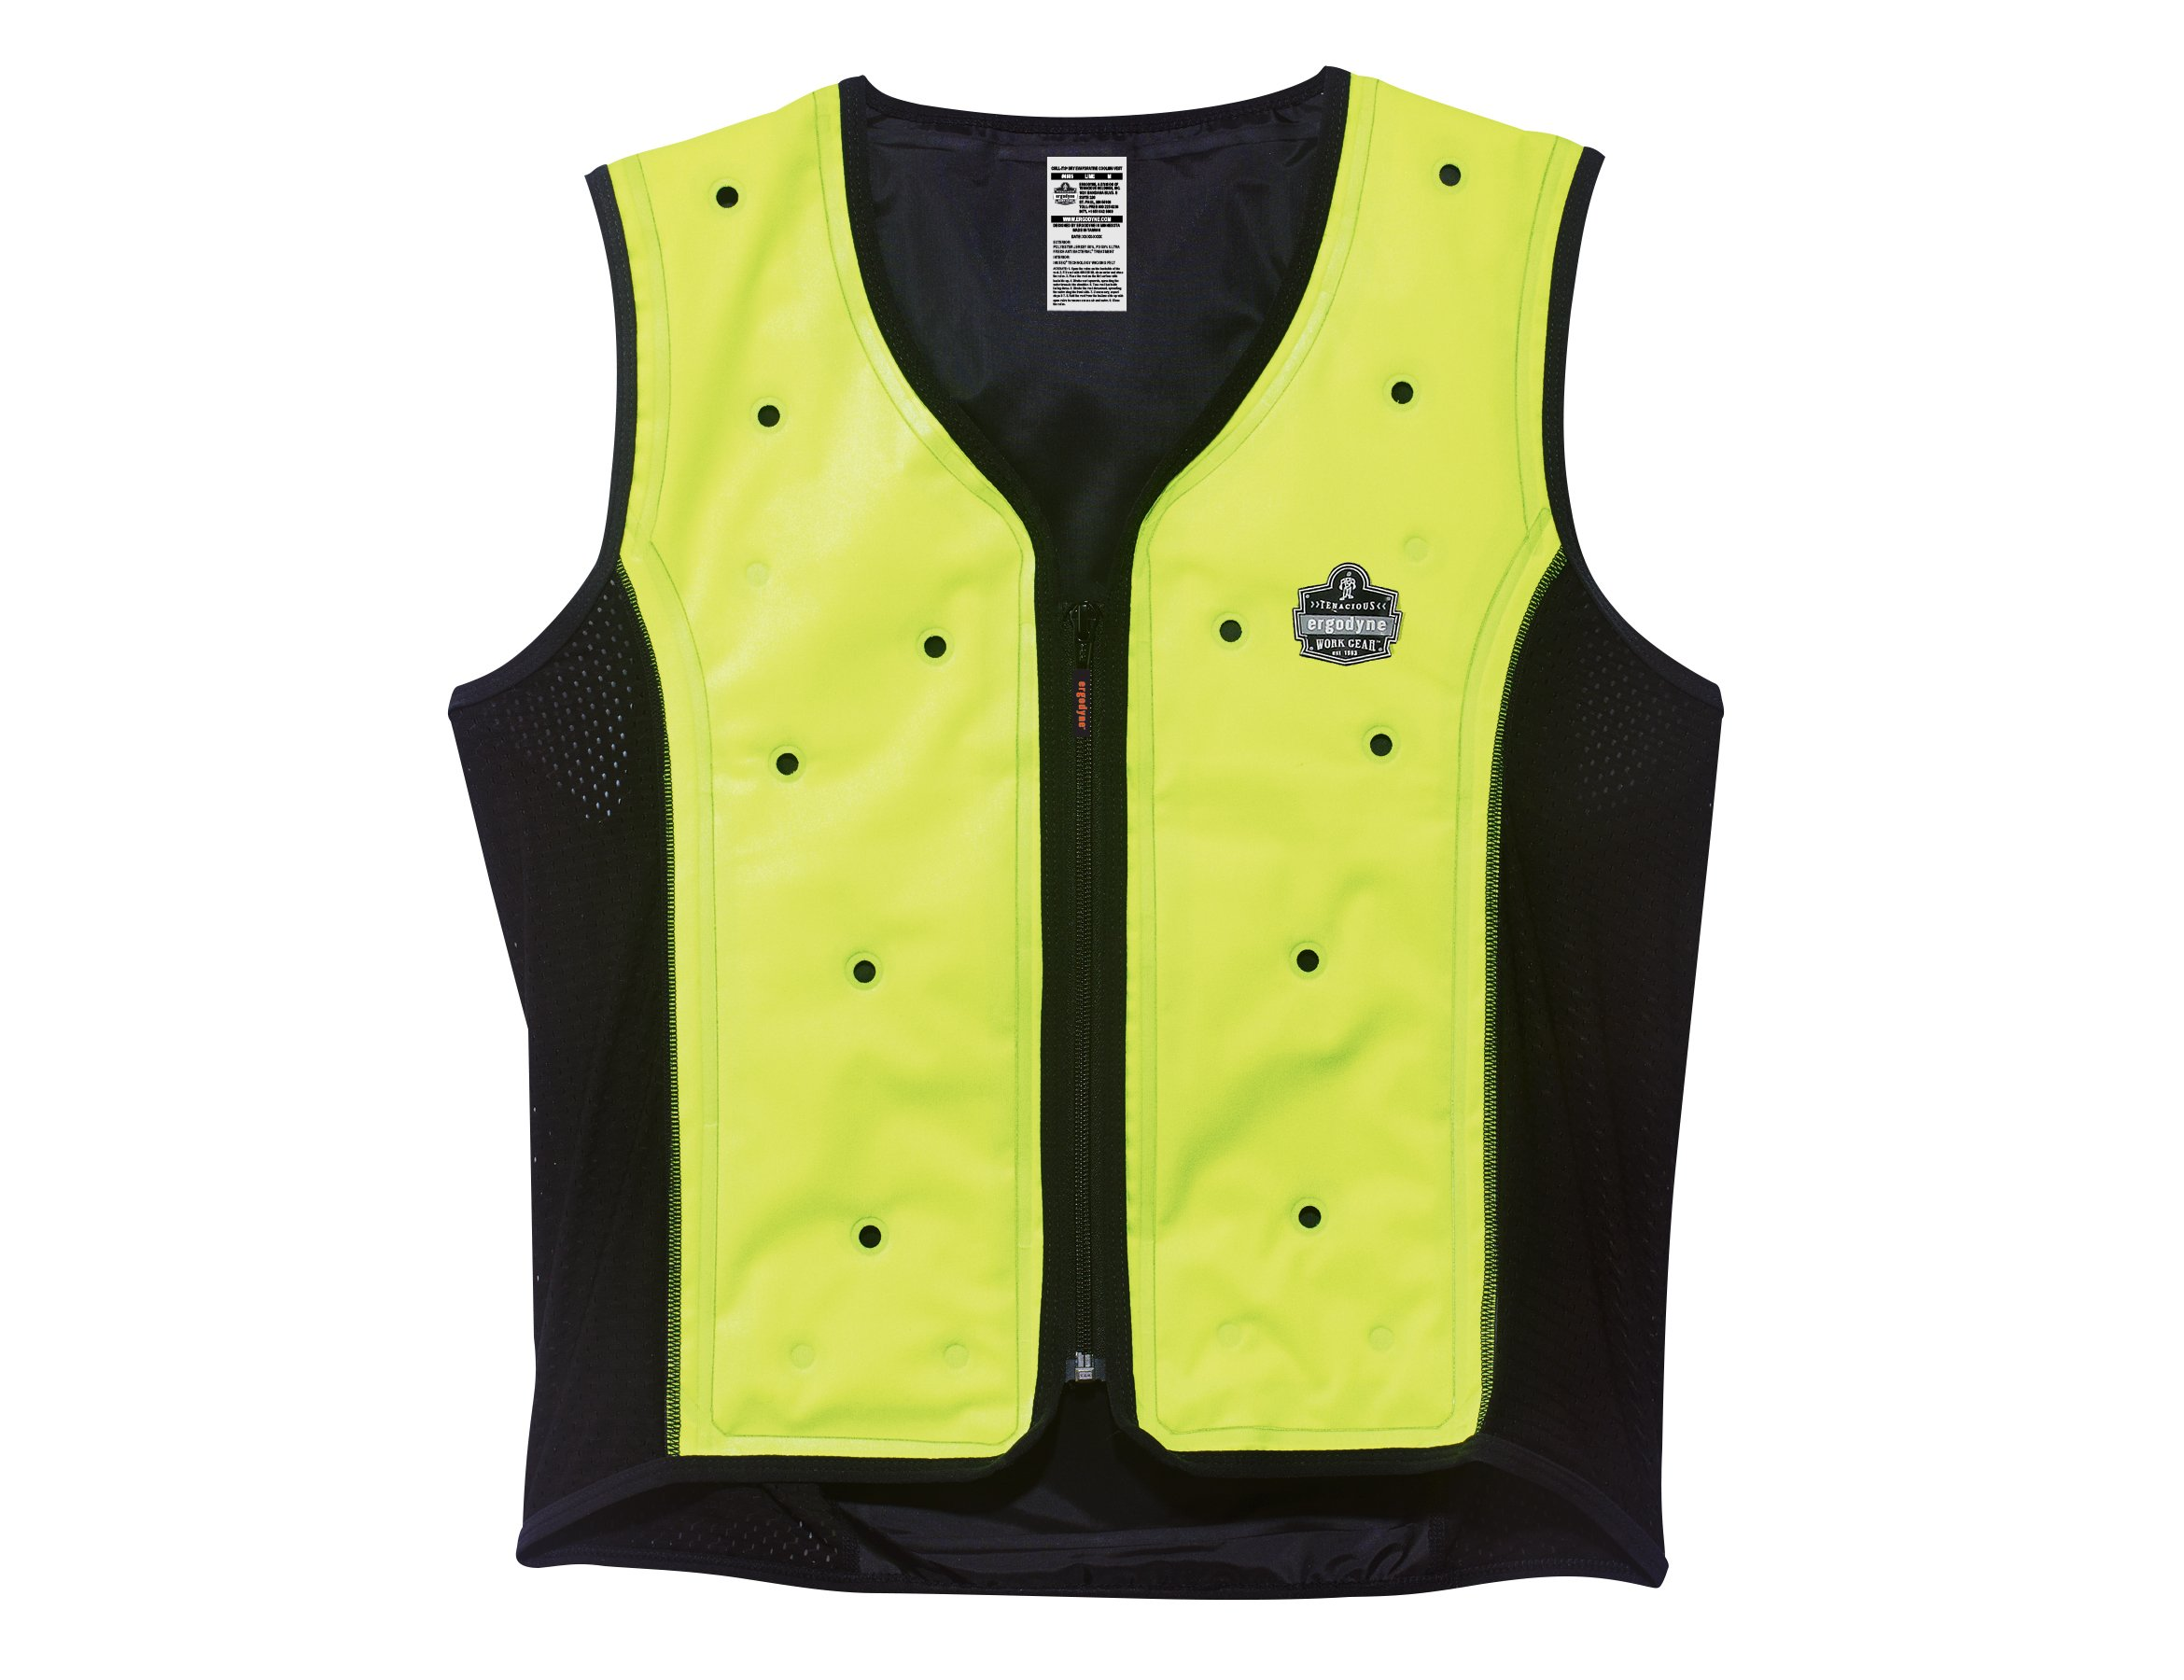 Ergodyne Chill Its 6685 Lime Dry Evaporative Cooling Vest, Large